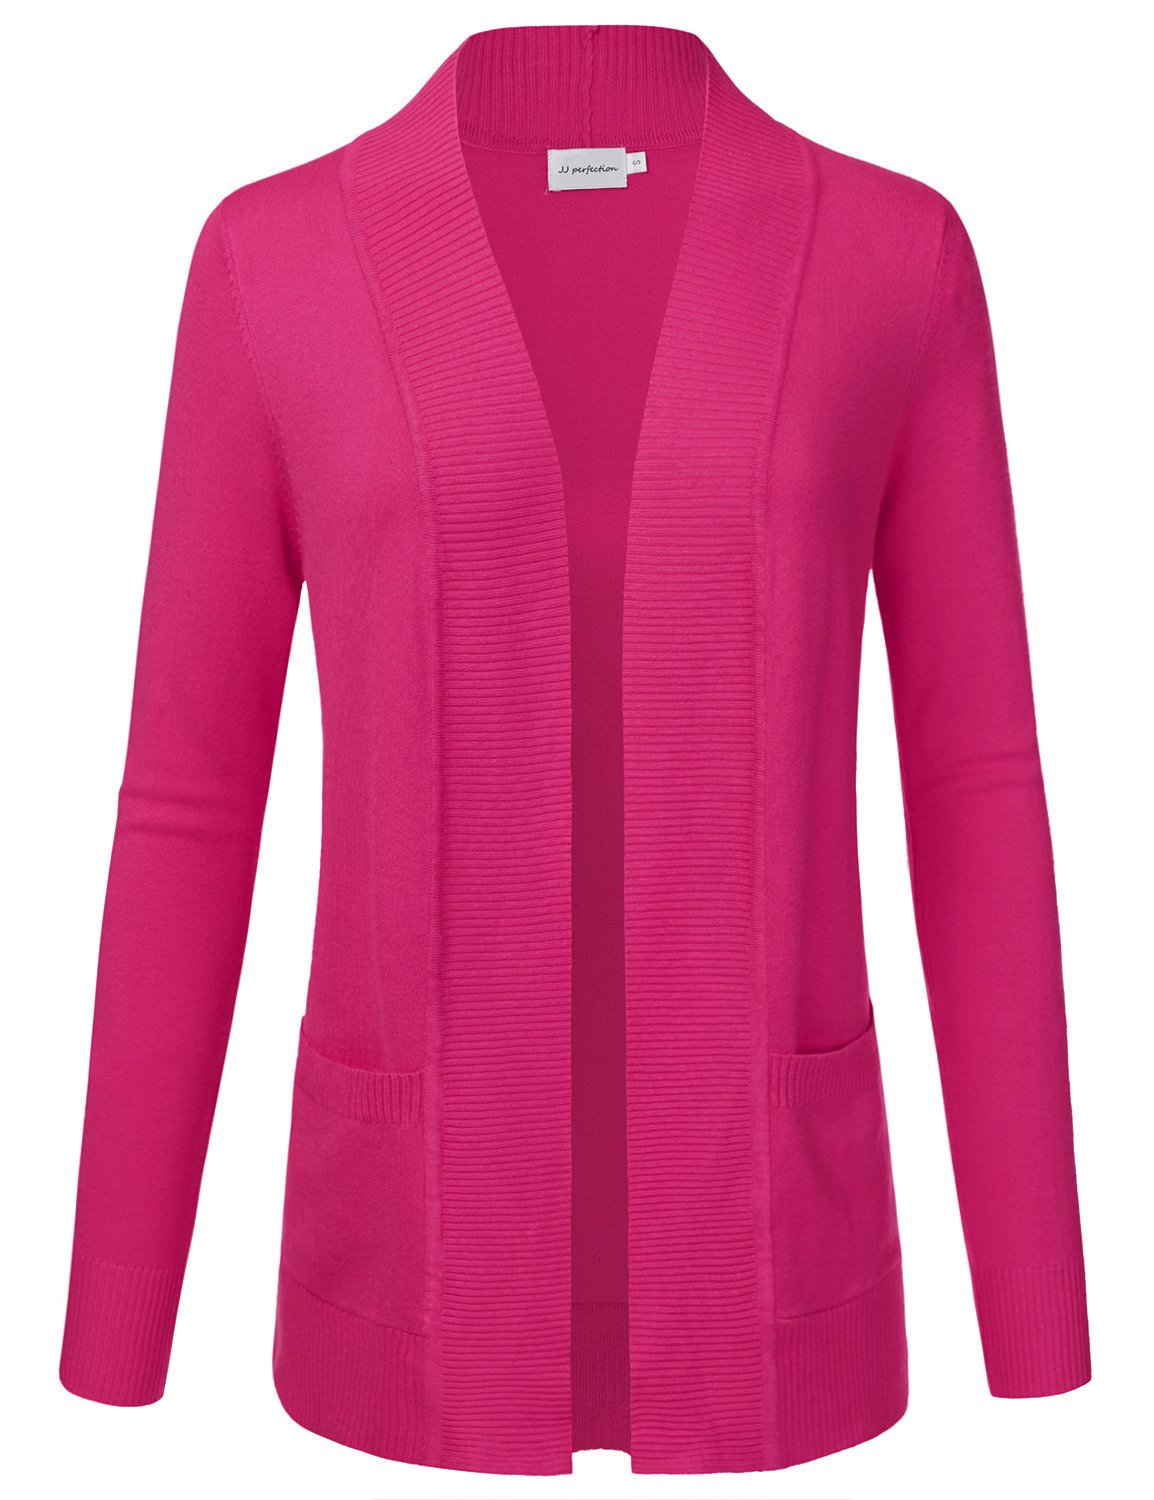 JJ Perfection Women's Open Front Knit Long Sleeve Pockets Sweater Cardigan HOTPINK 2XL